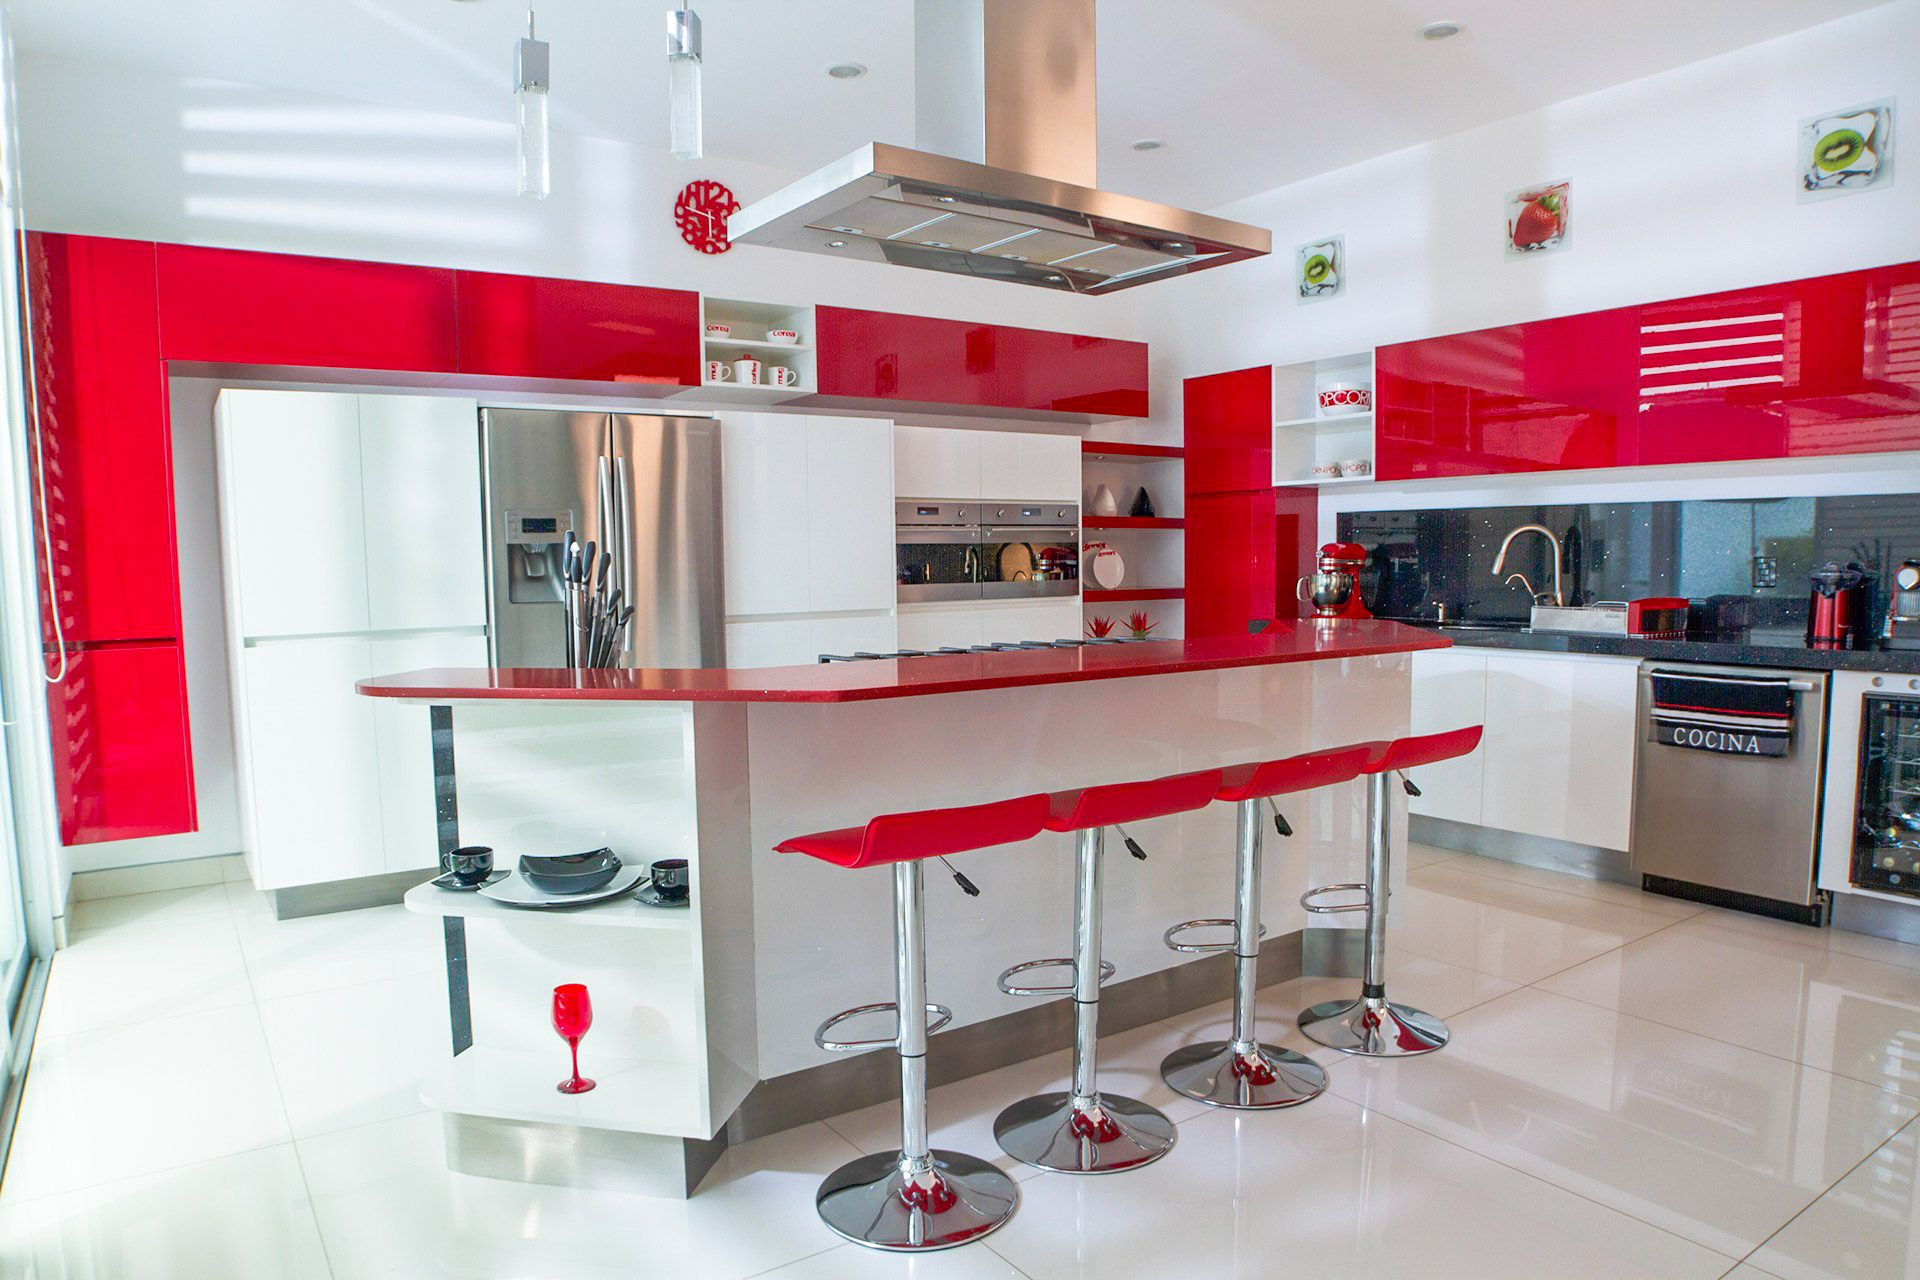 How Fun Is This Vibrant Red Glossy Color Shop This Look By Looking At Our Rauvisio Brilliant Acrylic Surfaces In 2020 High Gloss Kitchen Rehau Custom Cabinet Doors